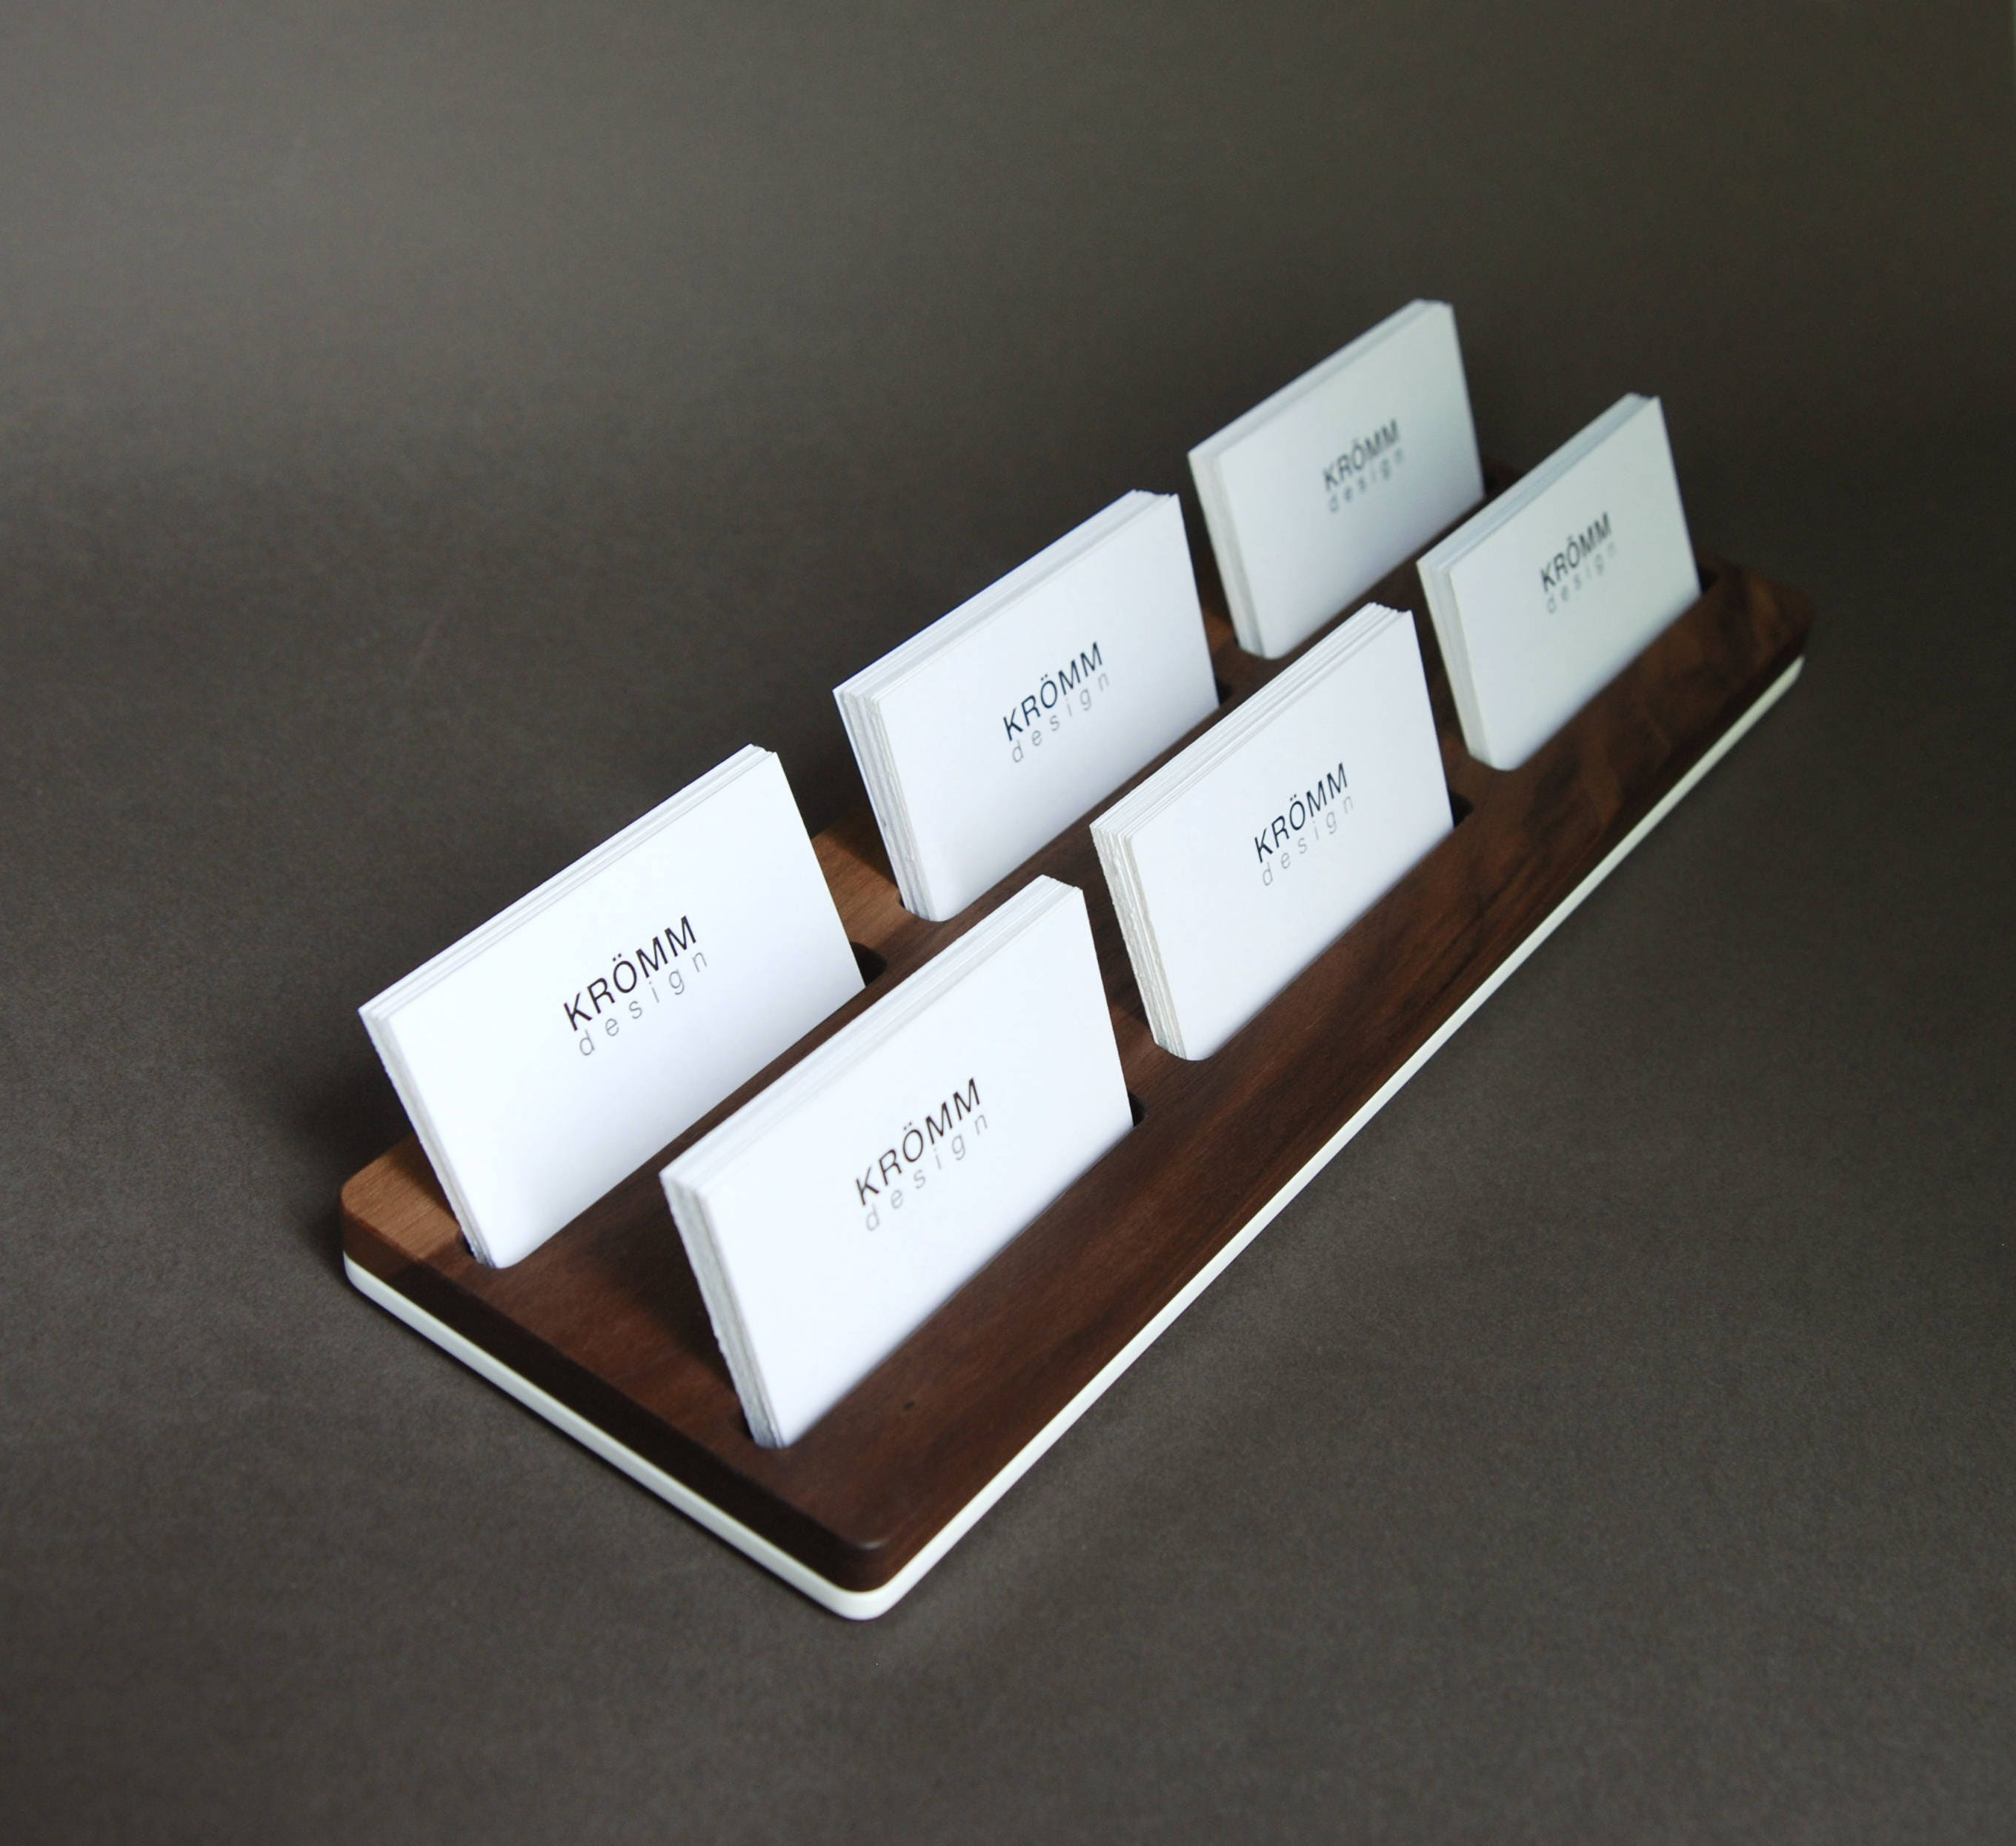 Wood two row business card holder for front desk wood business wood two row business card holder for front desk wood business card stand multiple business card display walnut wood card holder colourmoves